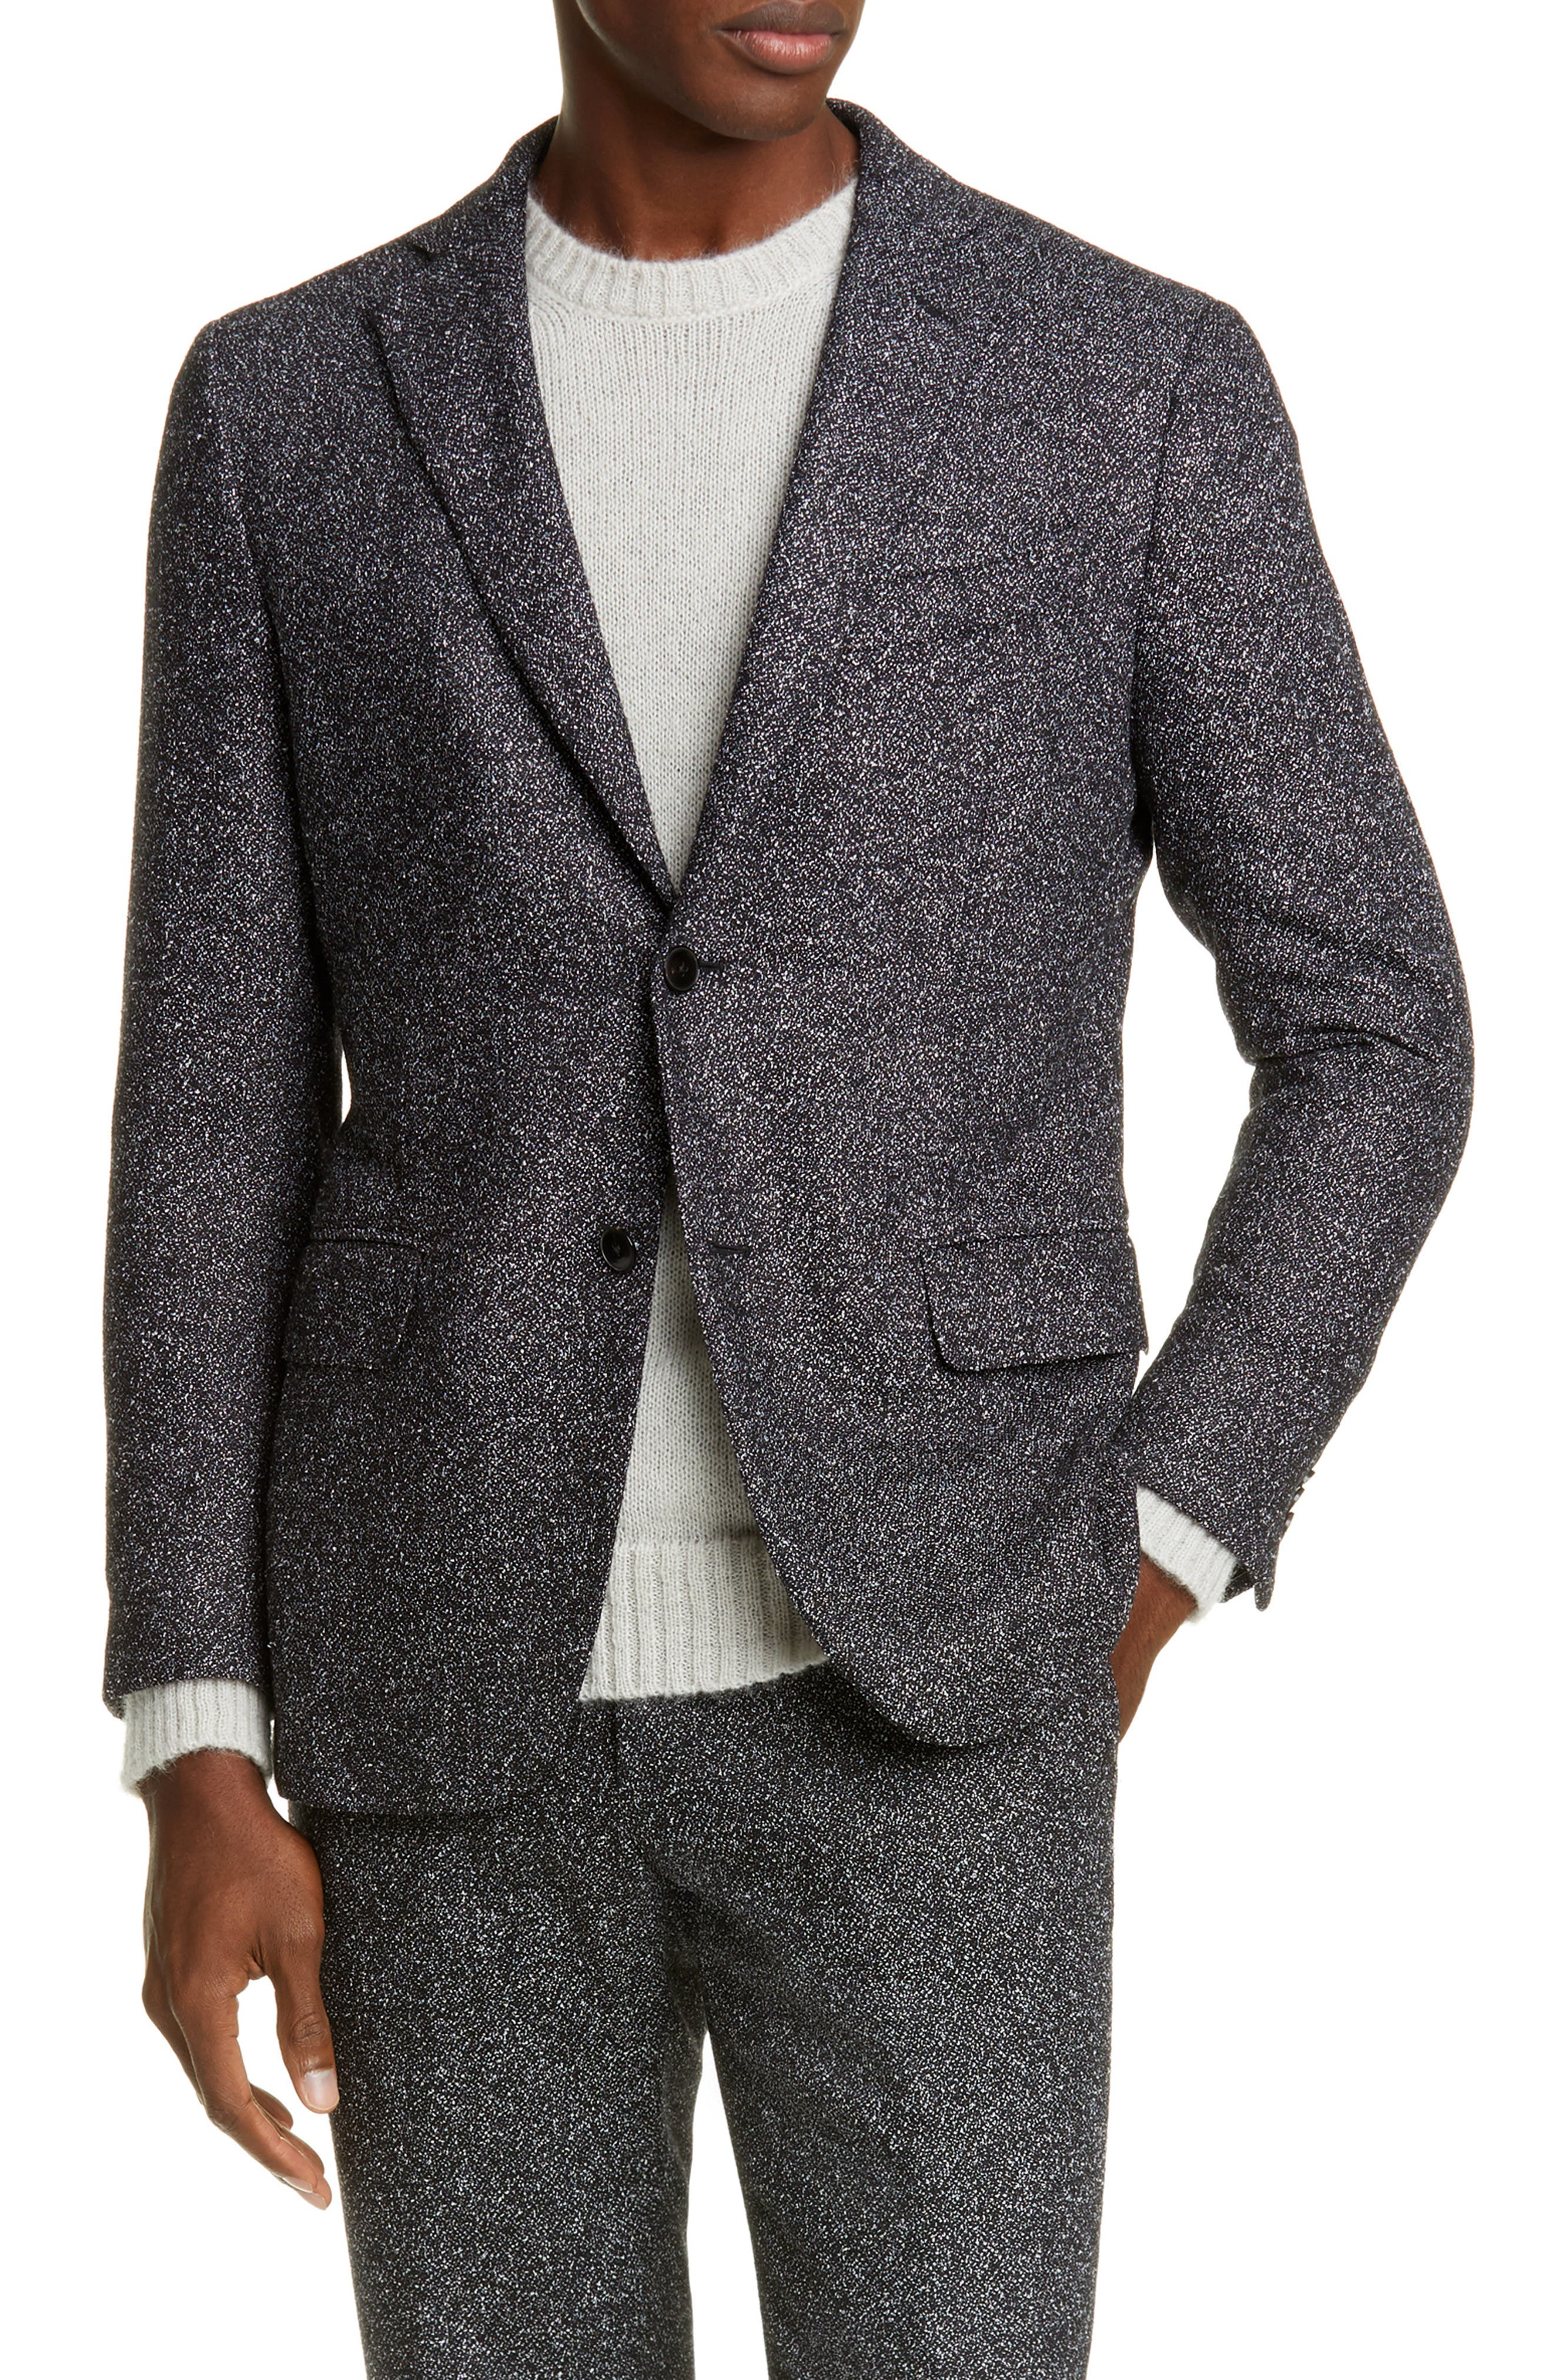 Image of Eidos Napoli Balthazar Trim Fit Mélange Sport Coat